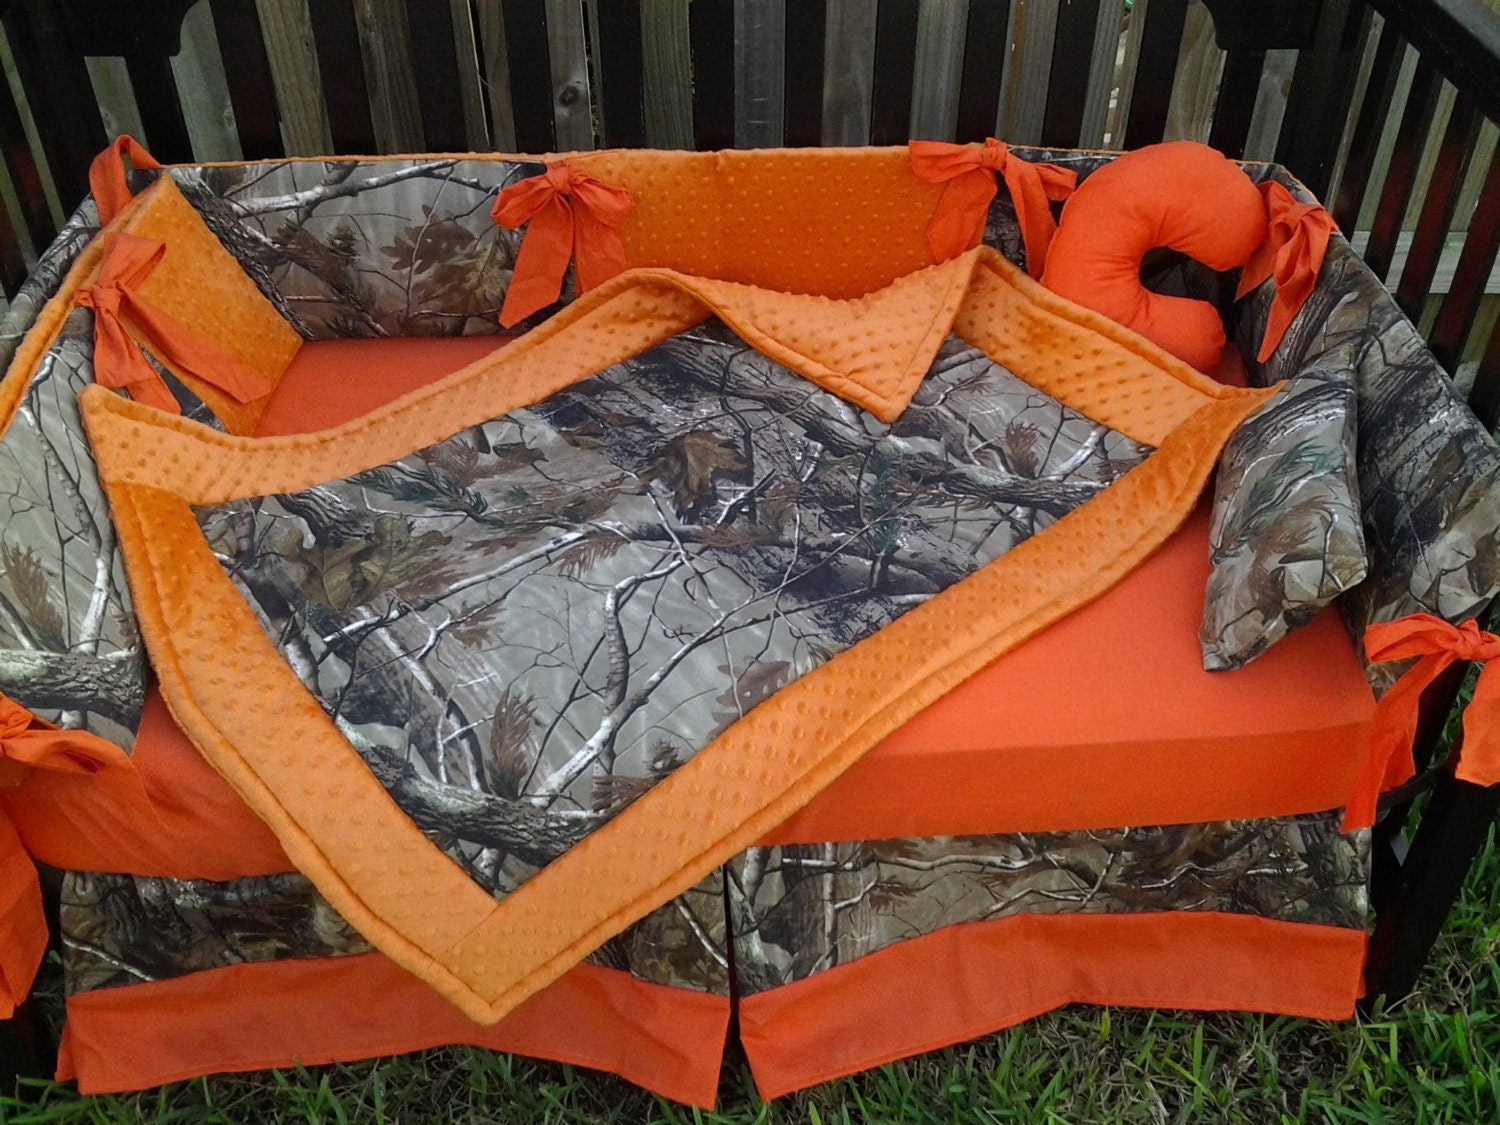 New Brown Real Tree Camouflage Mini Crib Bedding Set W Orange